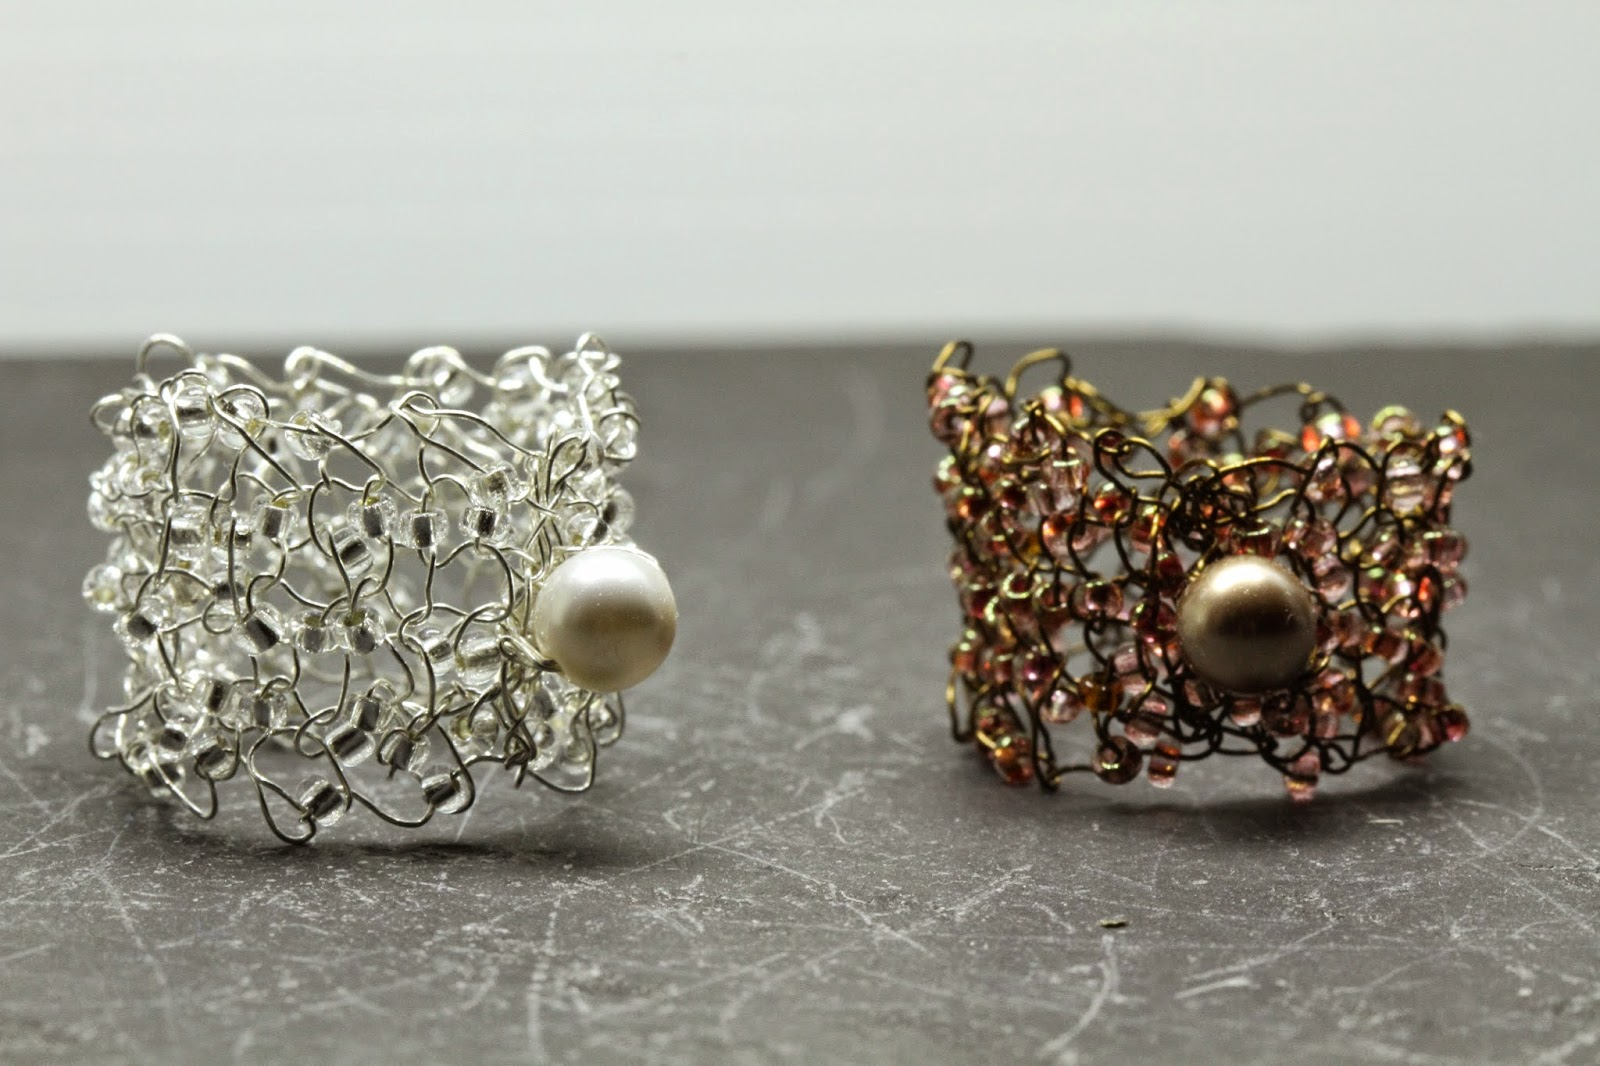 silver the angela of ring up metal wire rings close jewellery smith img knitted some views